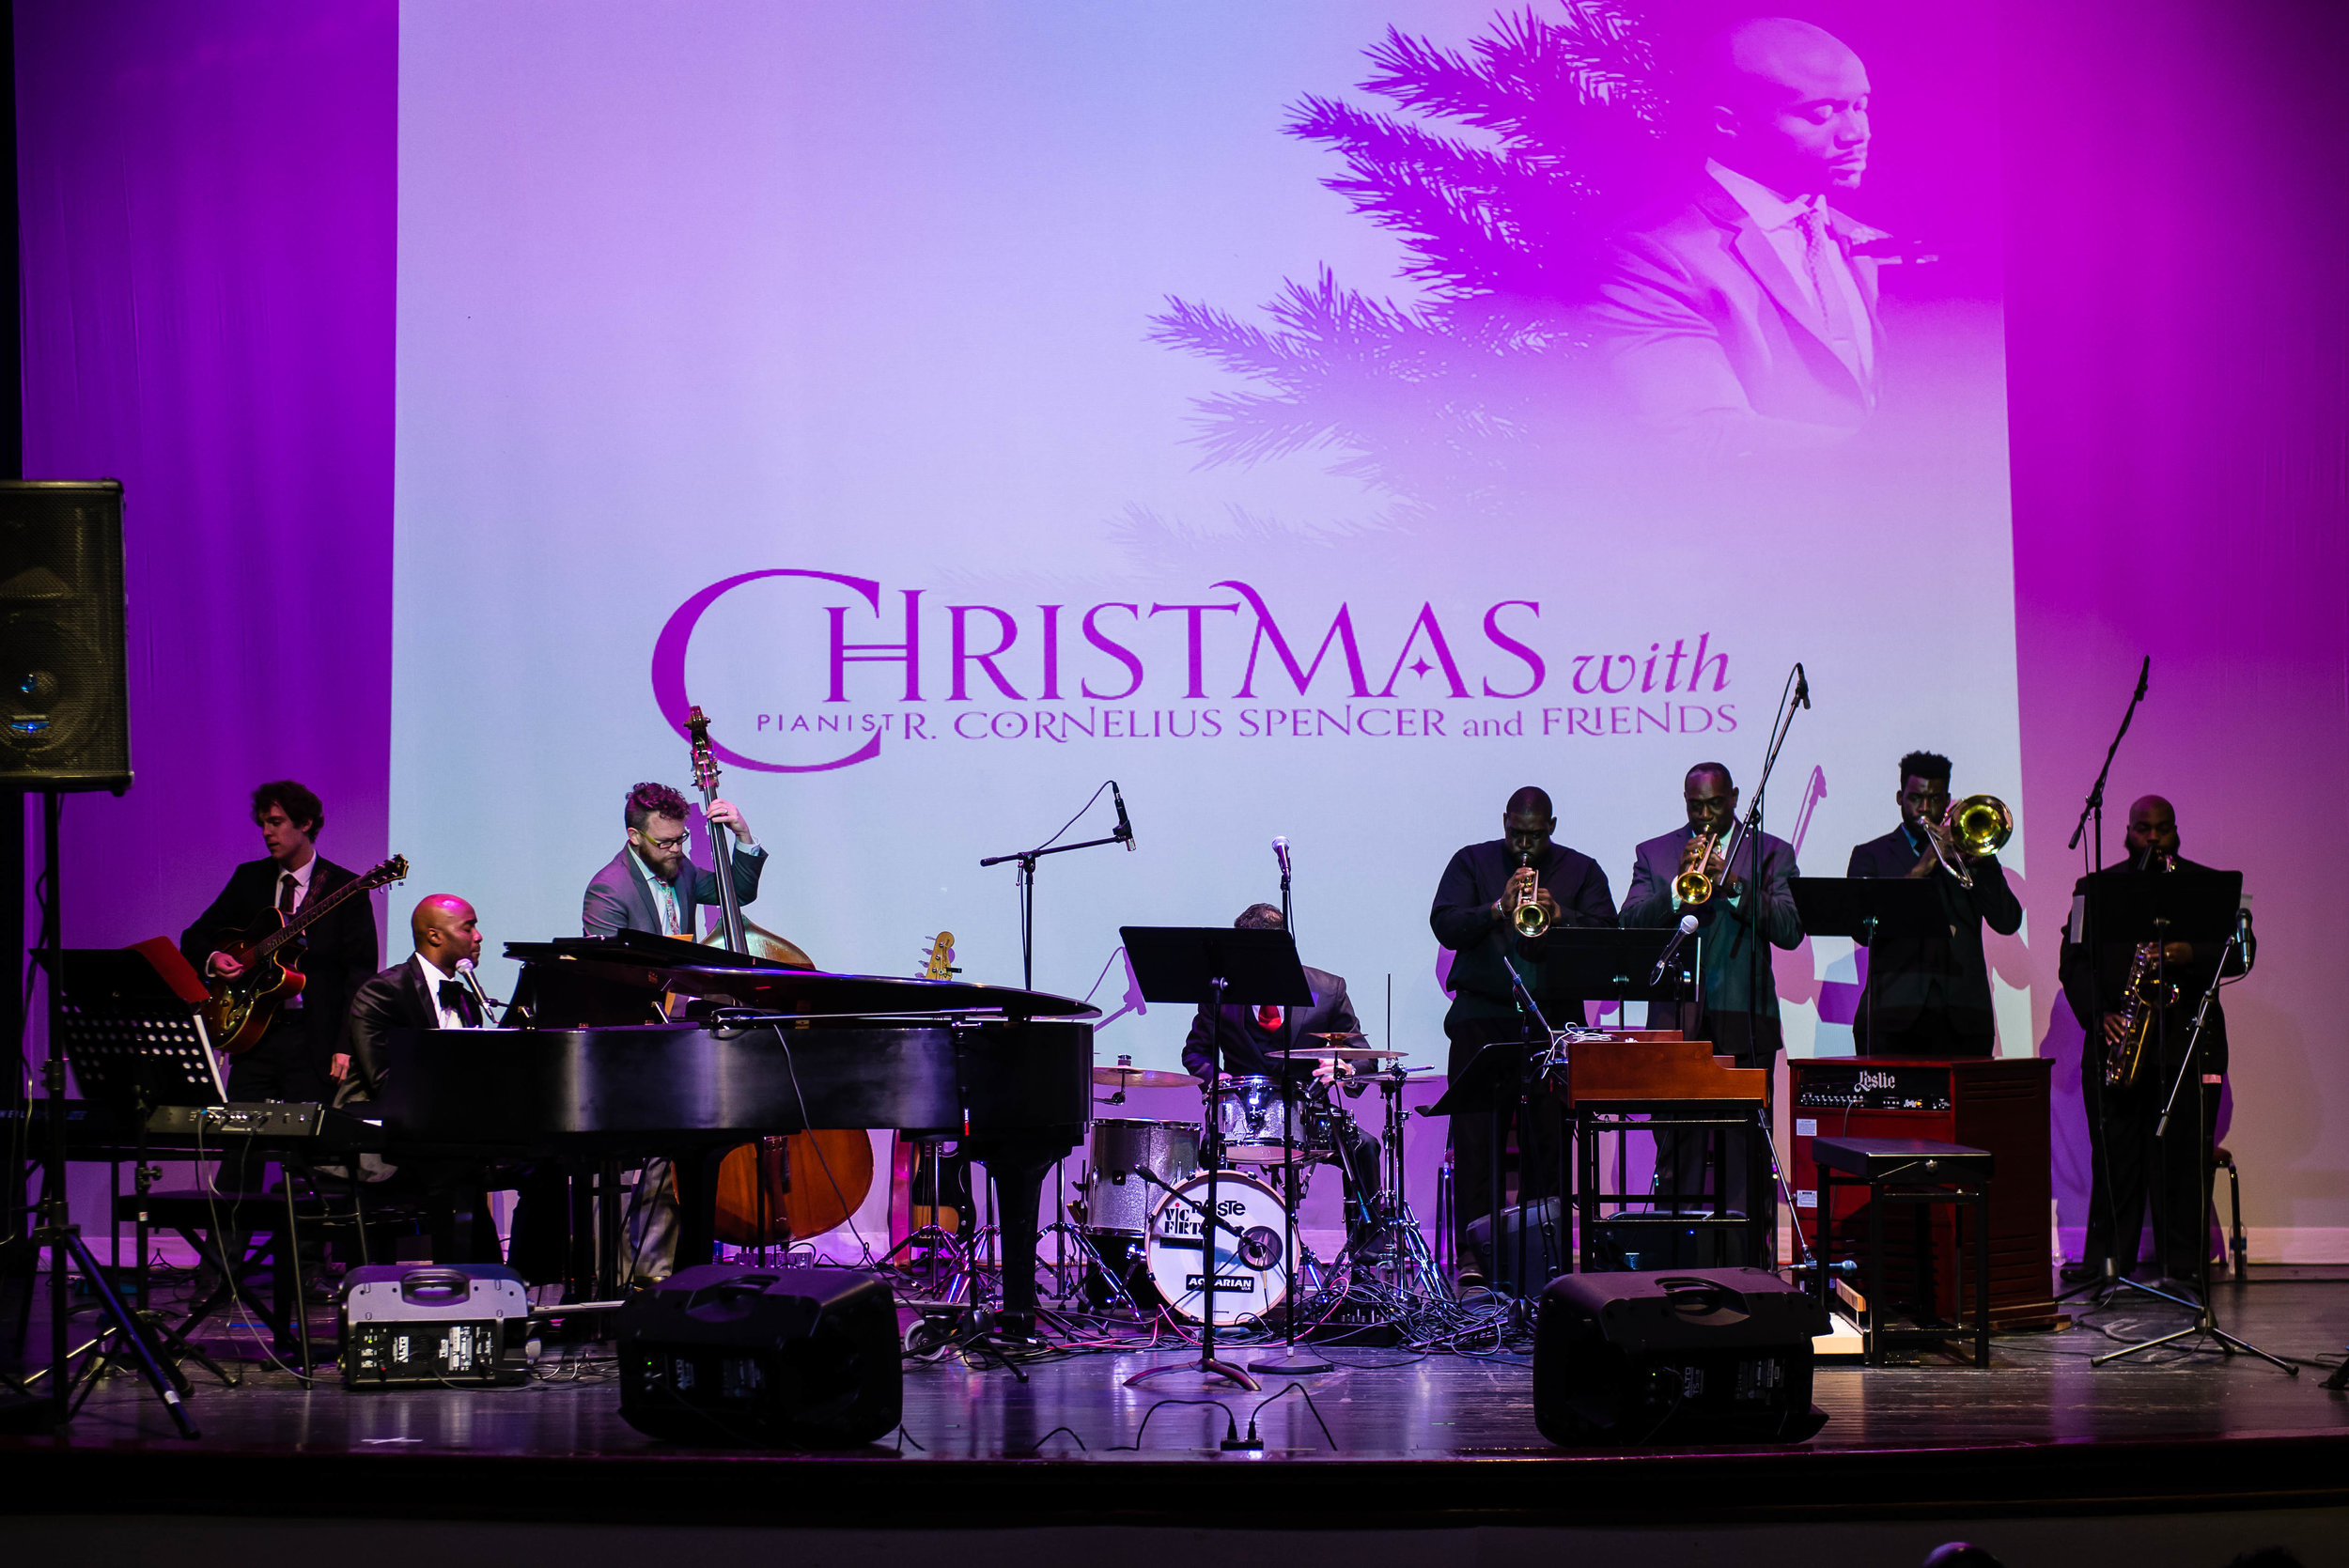 Christmas with Pianist R. Cornelius Spencer & Friends at the Historic Douglass Theatre (2017)